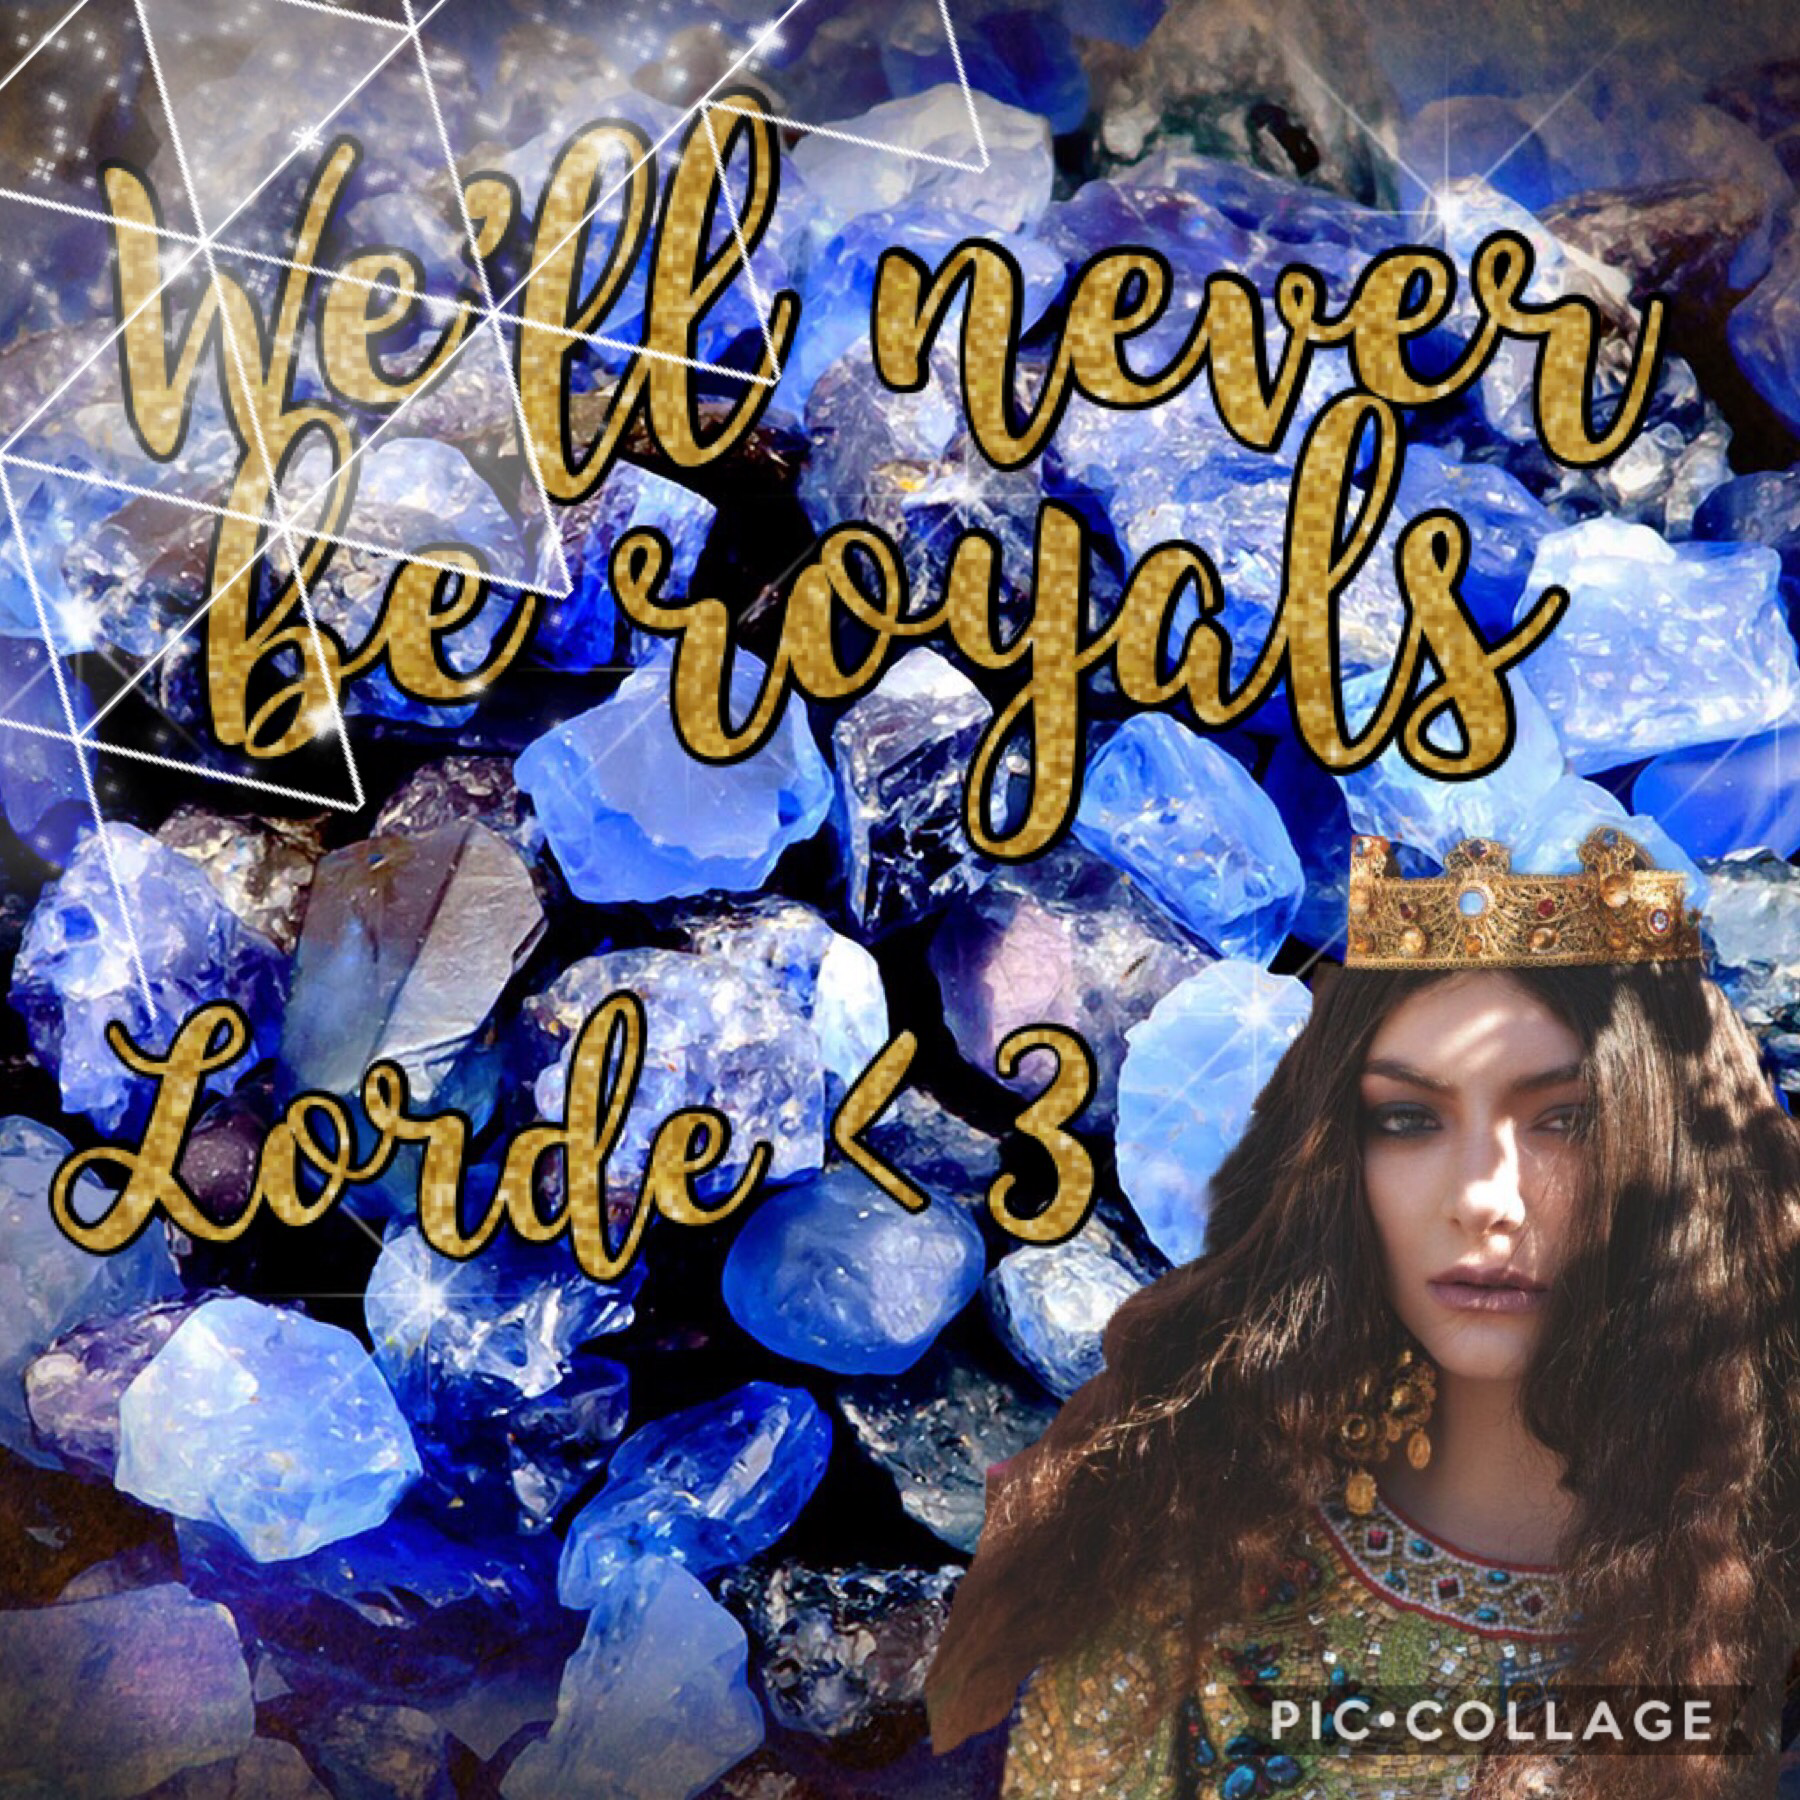 Lorde is one of my favorite singers to listen to!!! My favorite song is Royals!!! LOOK IT UP ITS SOOO GOOD!!!